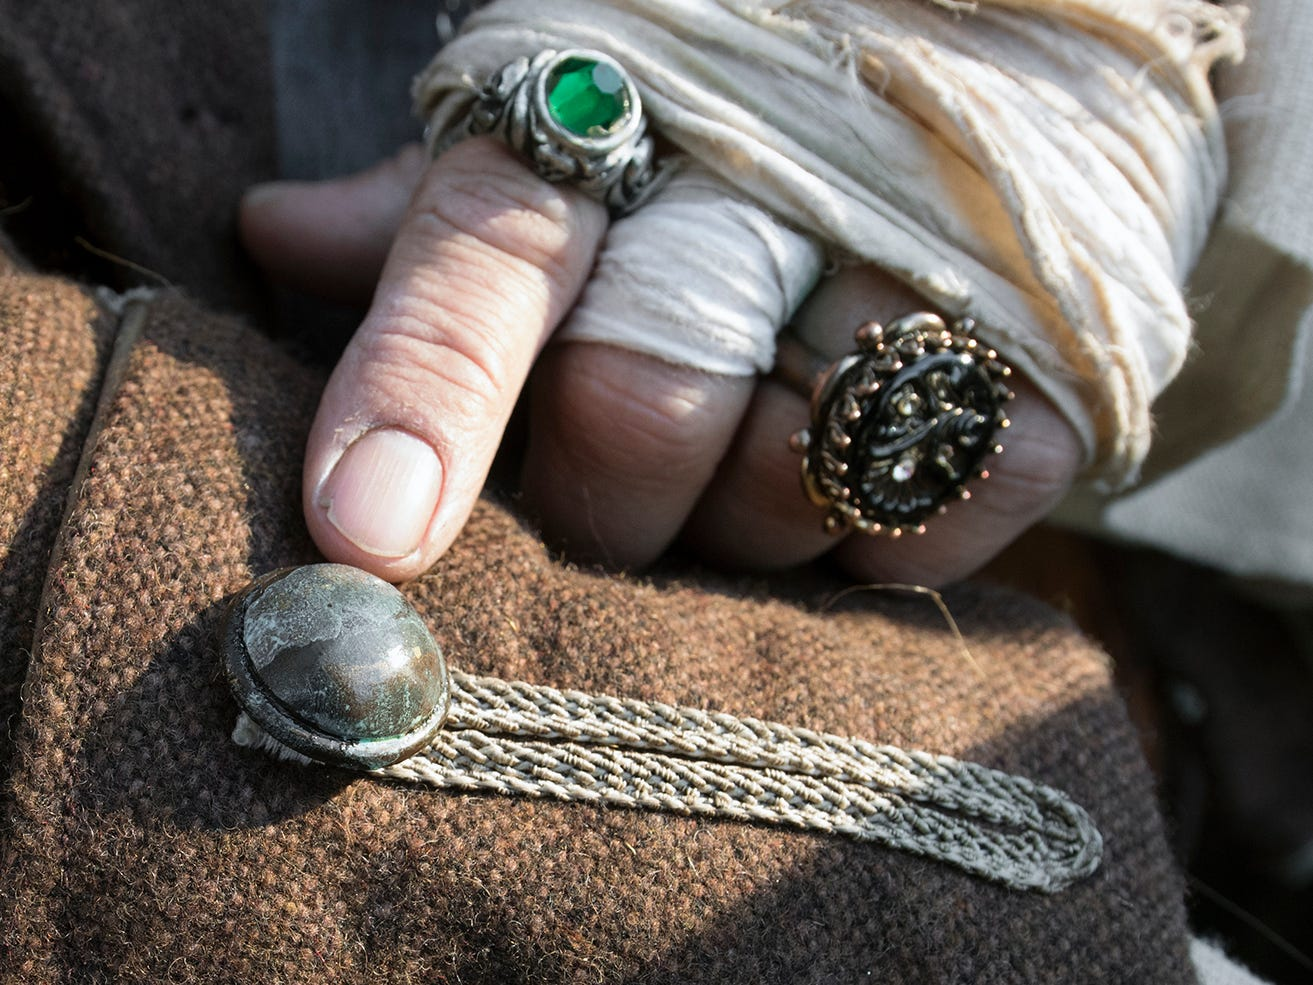 """According to A.J. Rosbrook, he obtained surplus buttons that were made for the """"Pirates of the Caribbean"""" movie series costumes. Rosbrook sewed his own jacket from a pattern."""